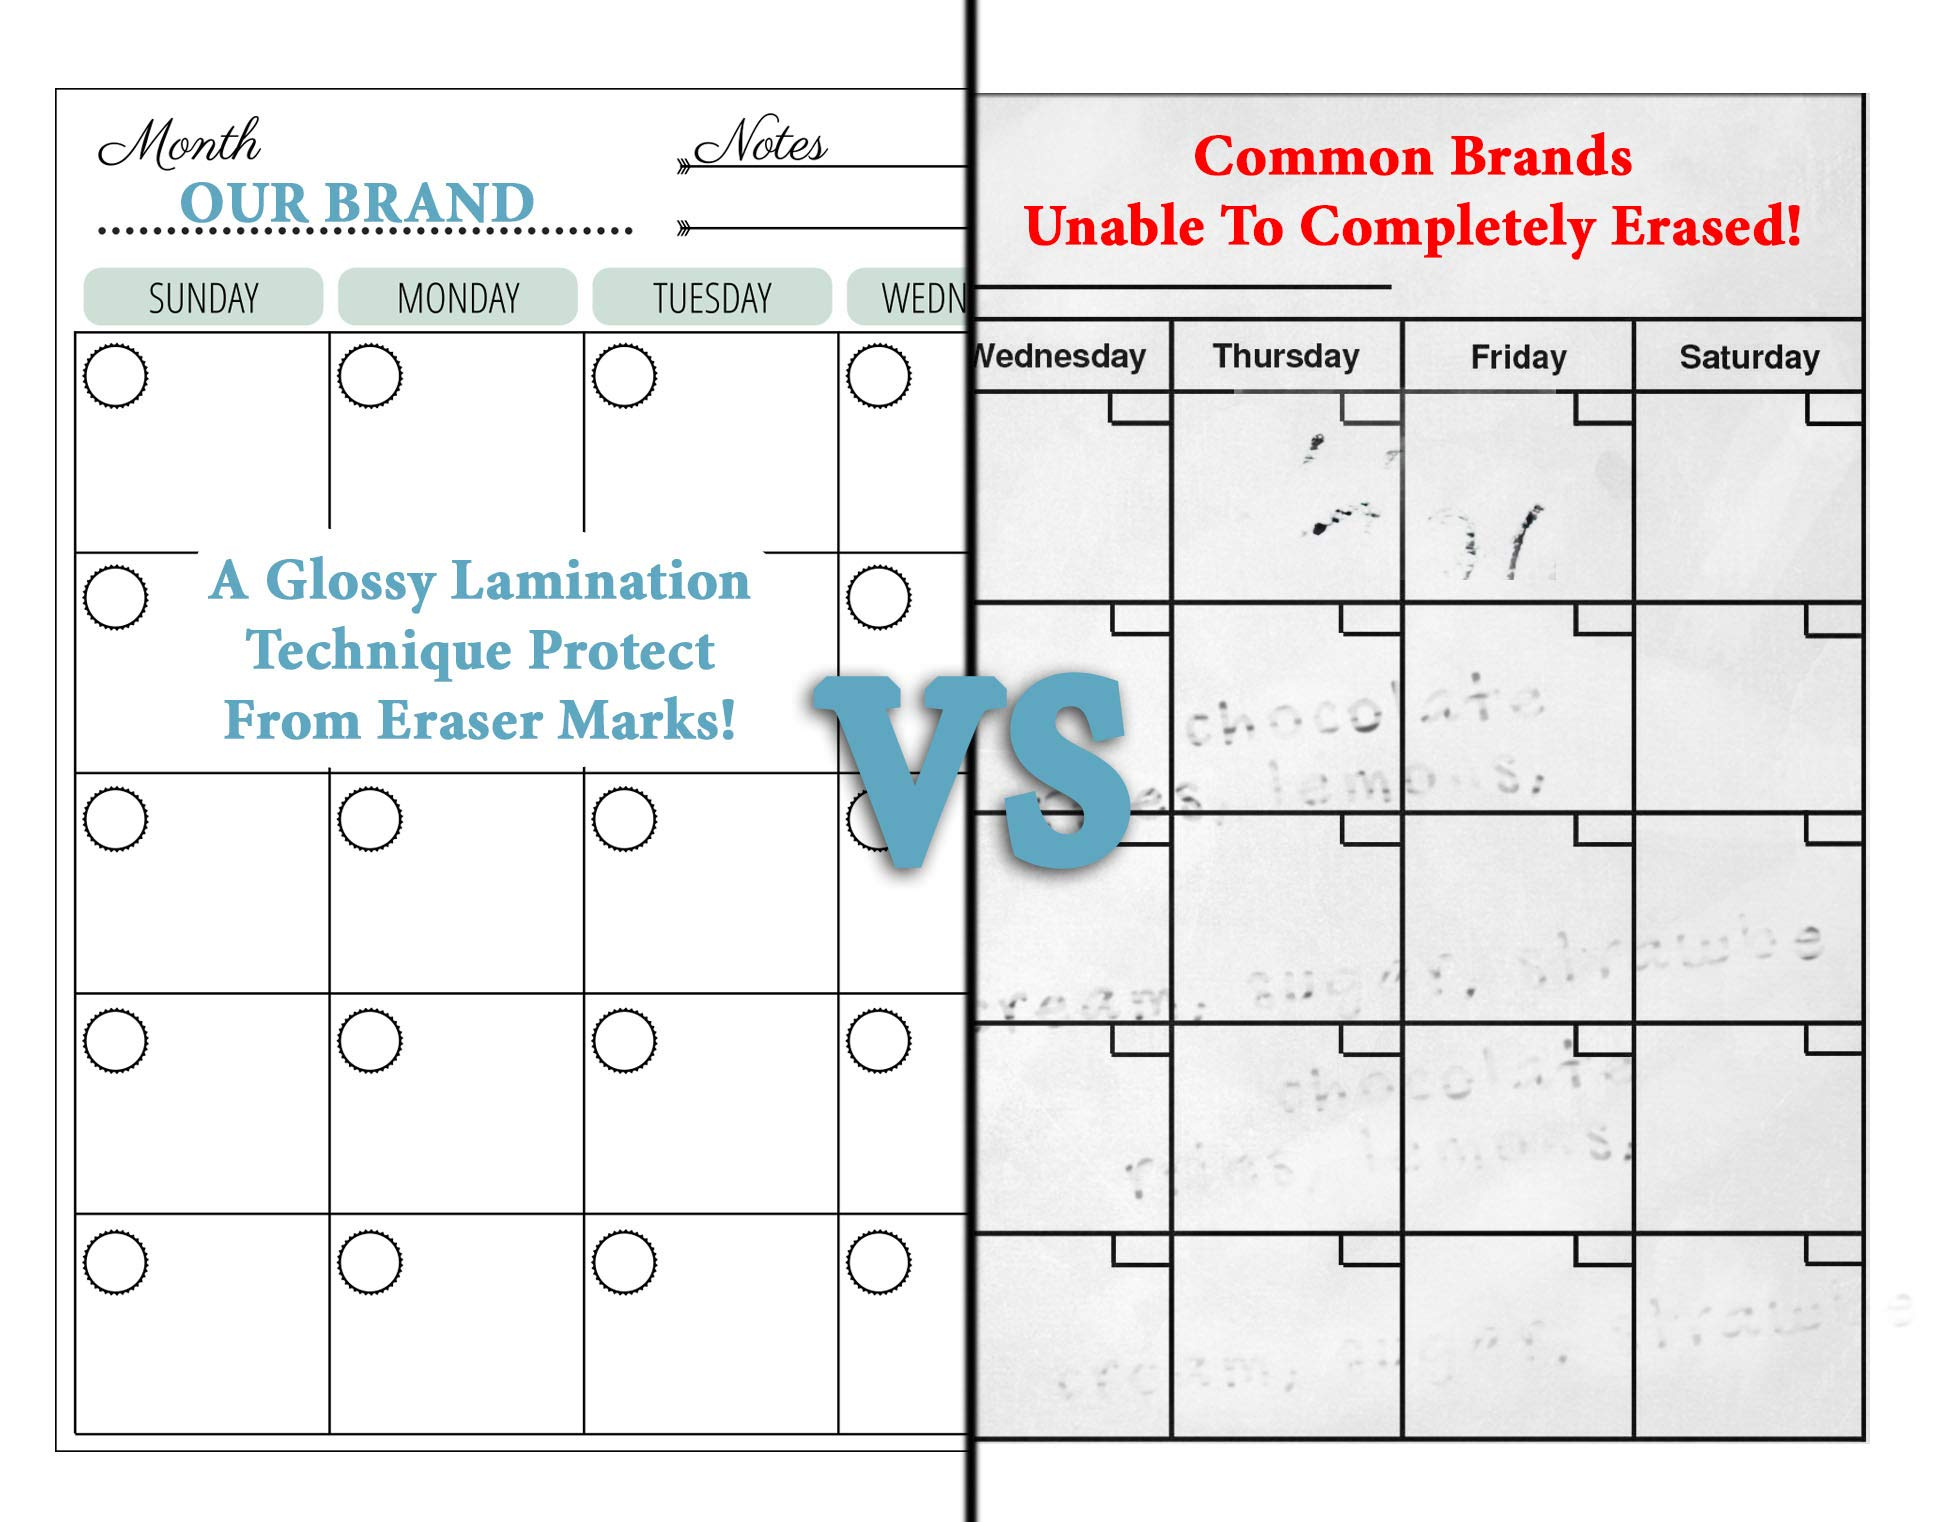 Dry Erase Monthly Magnetic Calendar Planner Set, White Board W/Extra Meal Planner, for Kitchen Refrigerator, Flexible, a Highly Designed Stiff Box for Home or Office. White, 16''x12''. by BIGGAHOME by Bigga Home (Image #6)